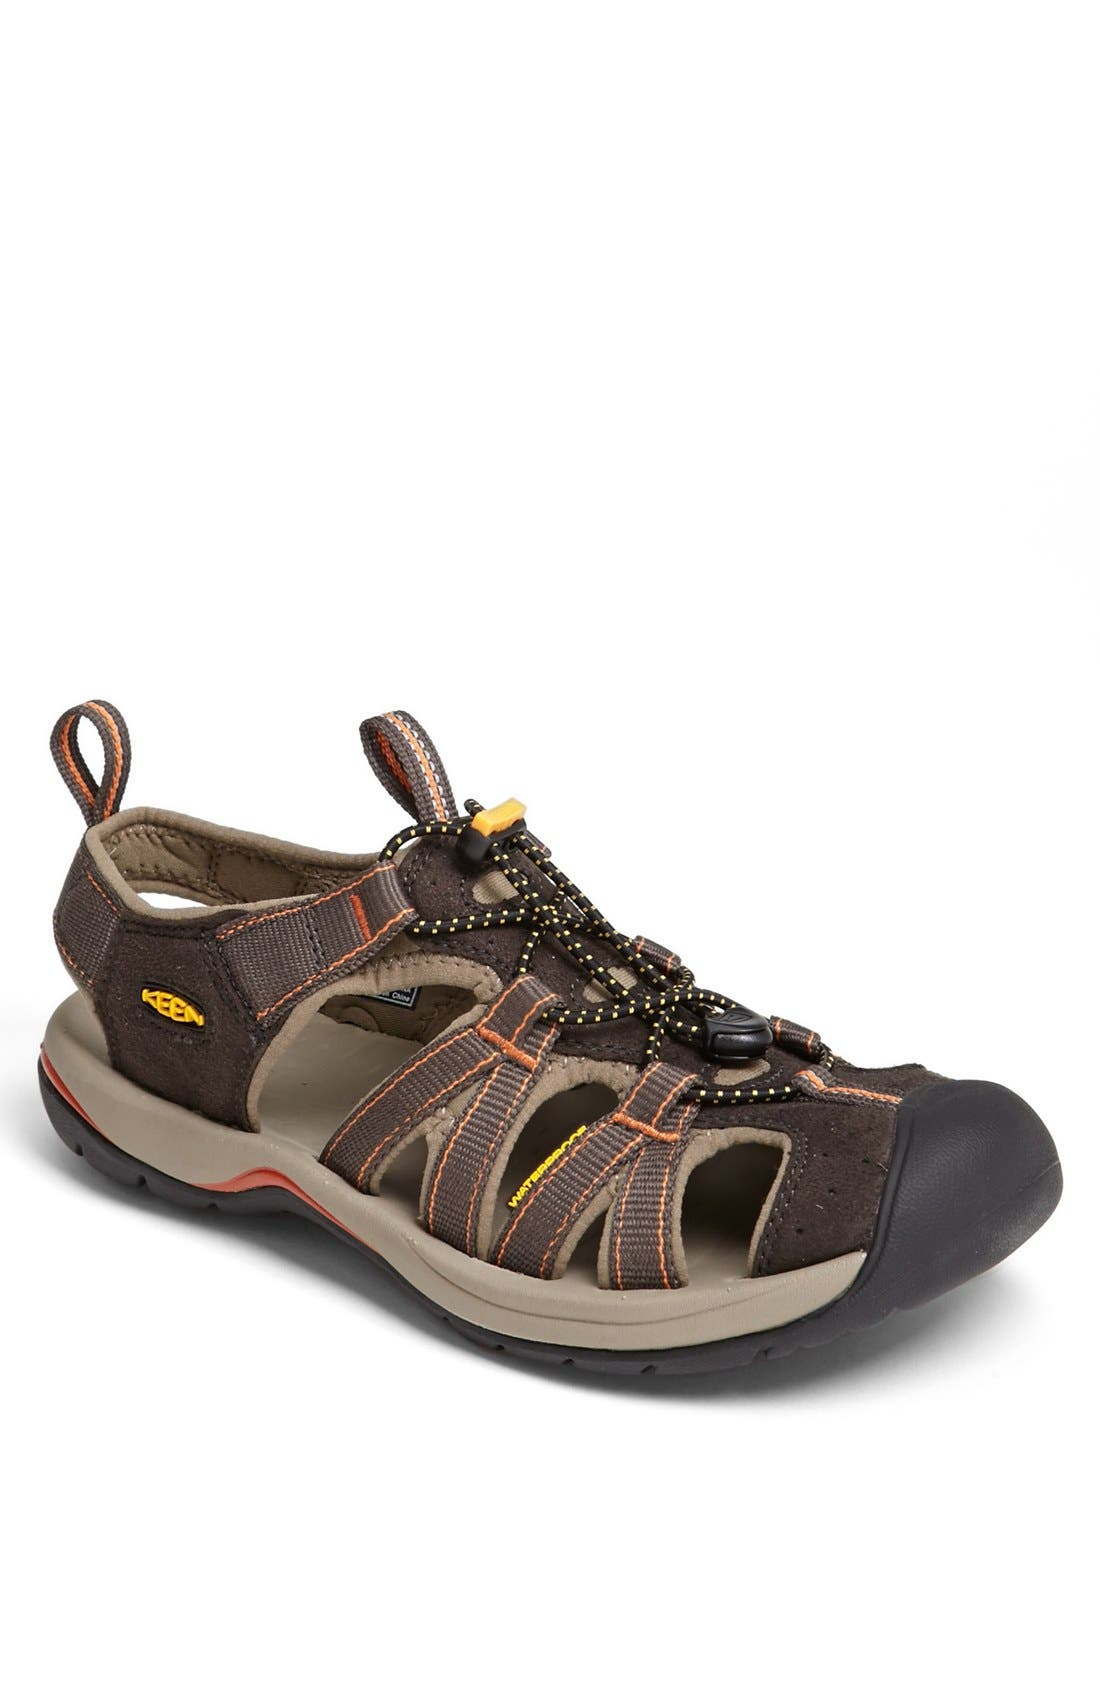 Alternate Image 1 Selected - Keen 'Kanyon' Waterproof Sandal (Men)